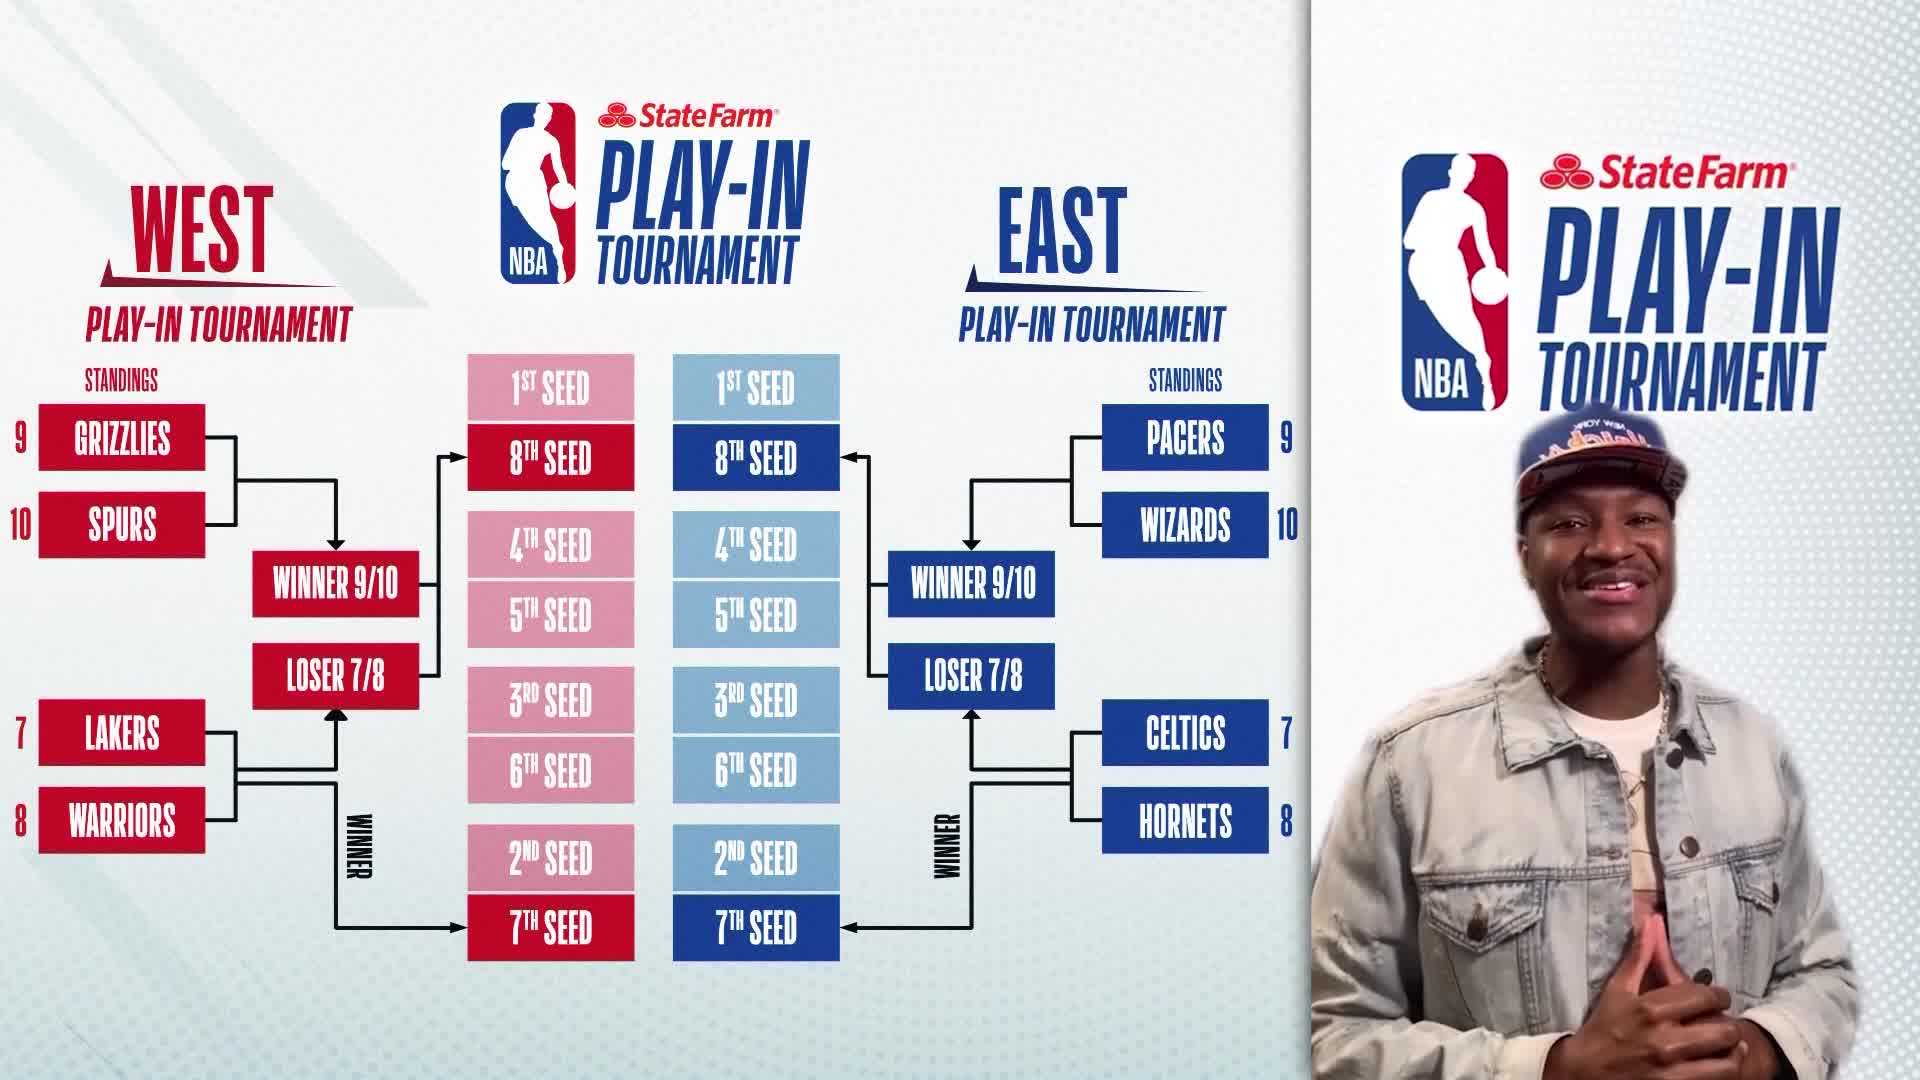 State Farm Play-In Tournament Update